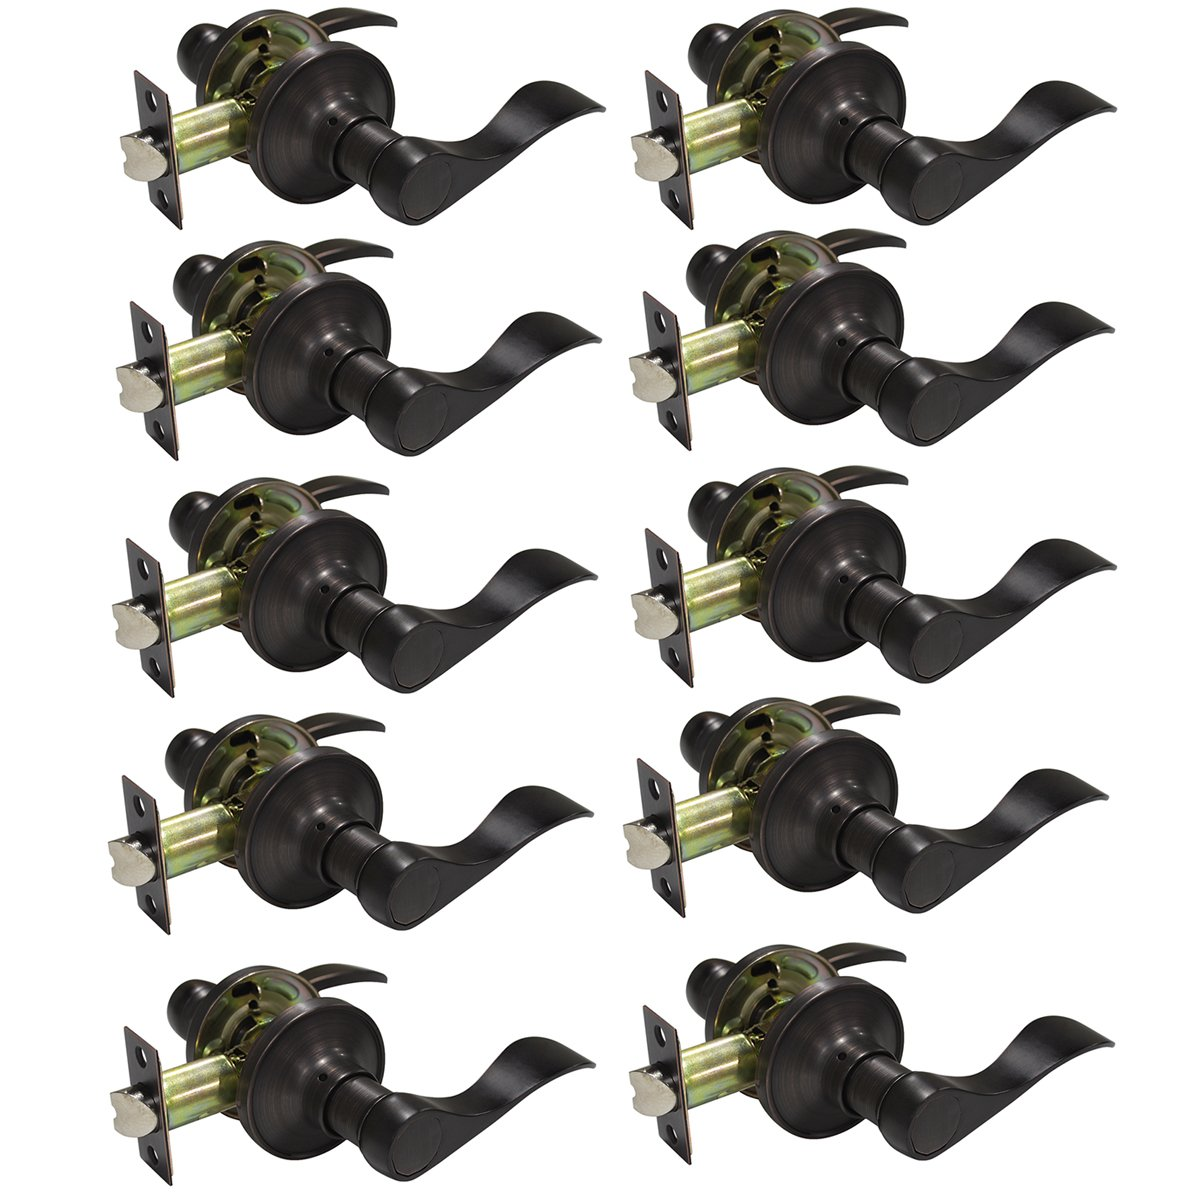 Probrico Oil Rubbed Bronze Privacy Door Lever Handles Keyless Lock Set Leversets (Bed and Bath) 10 Pack